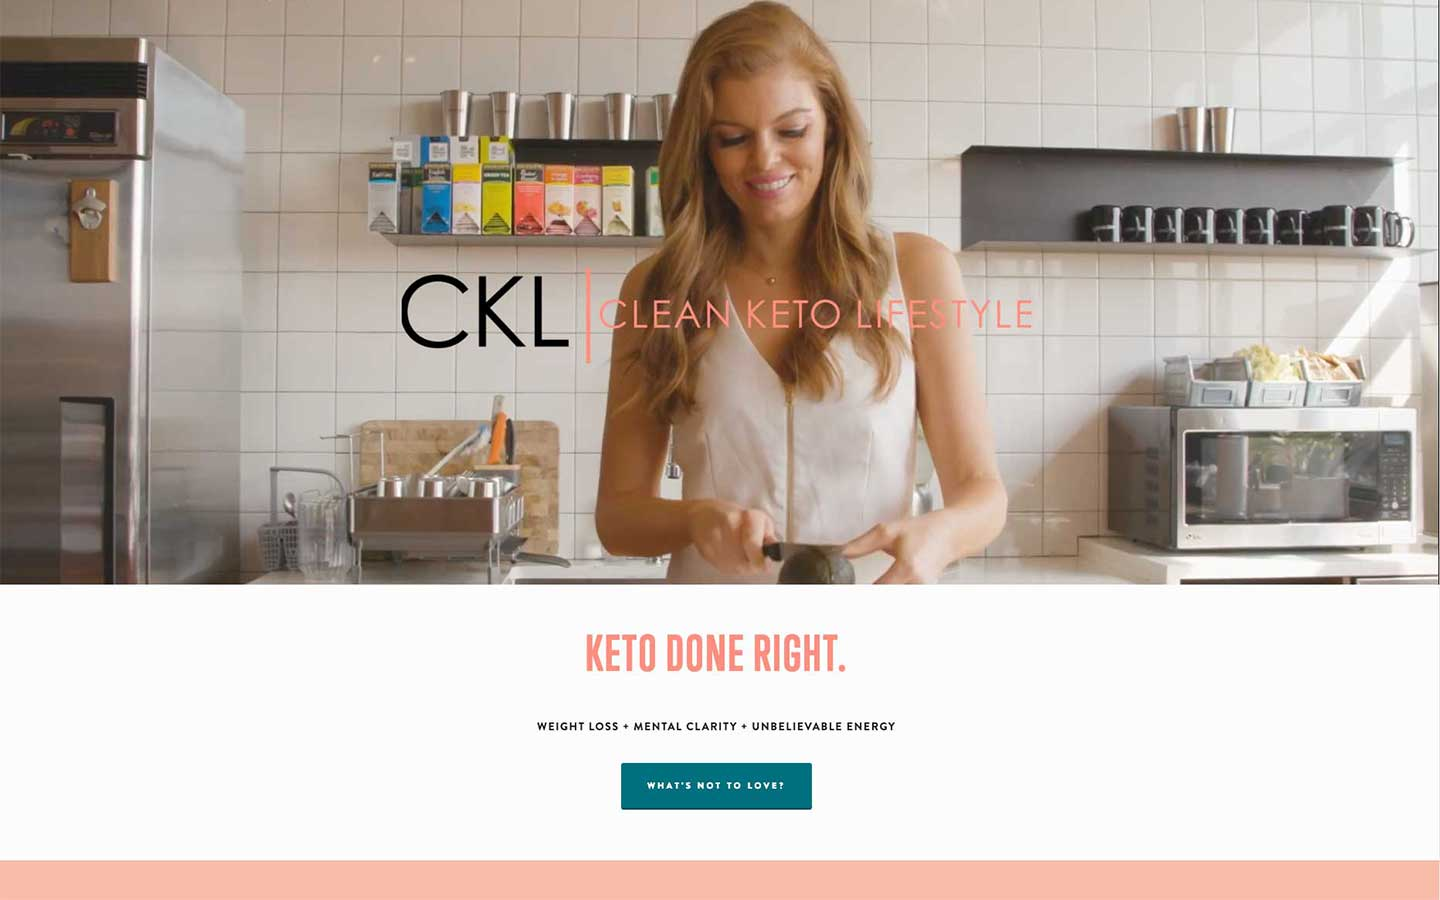 Clean Keto Lifestyle Squarespace website with health coach, Karissa Long.